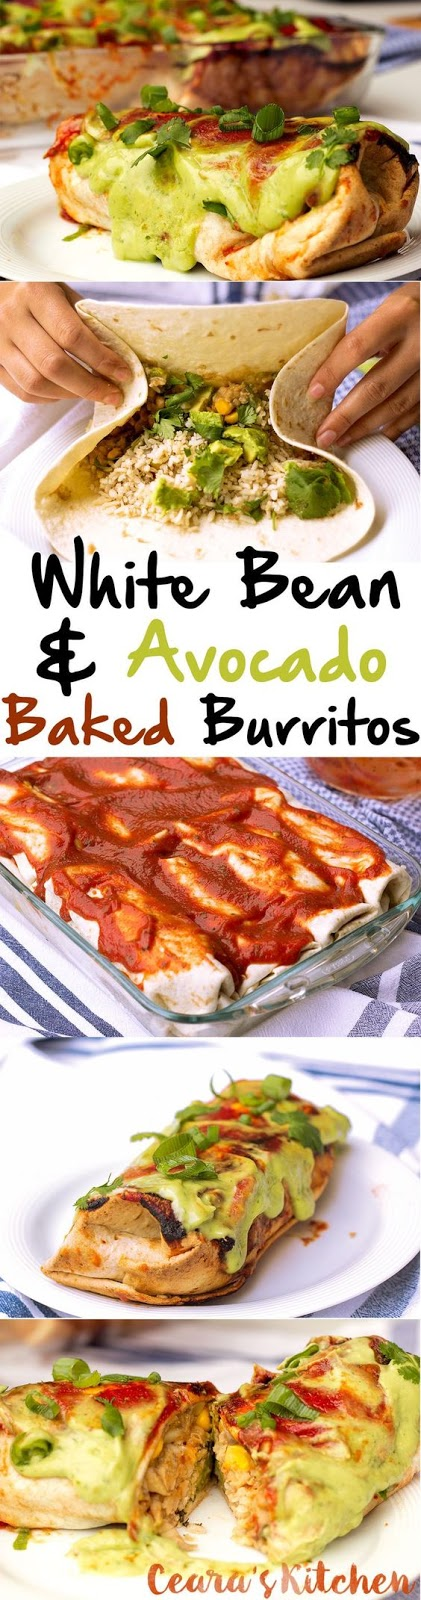 White Bean and Avocado Baked Burritos